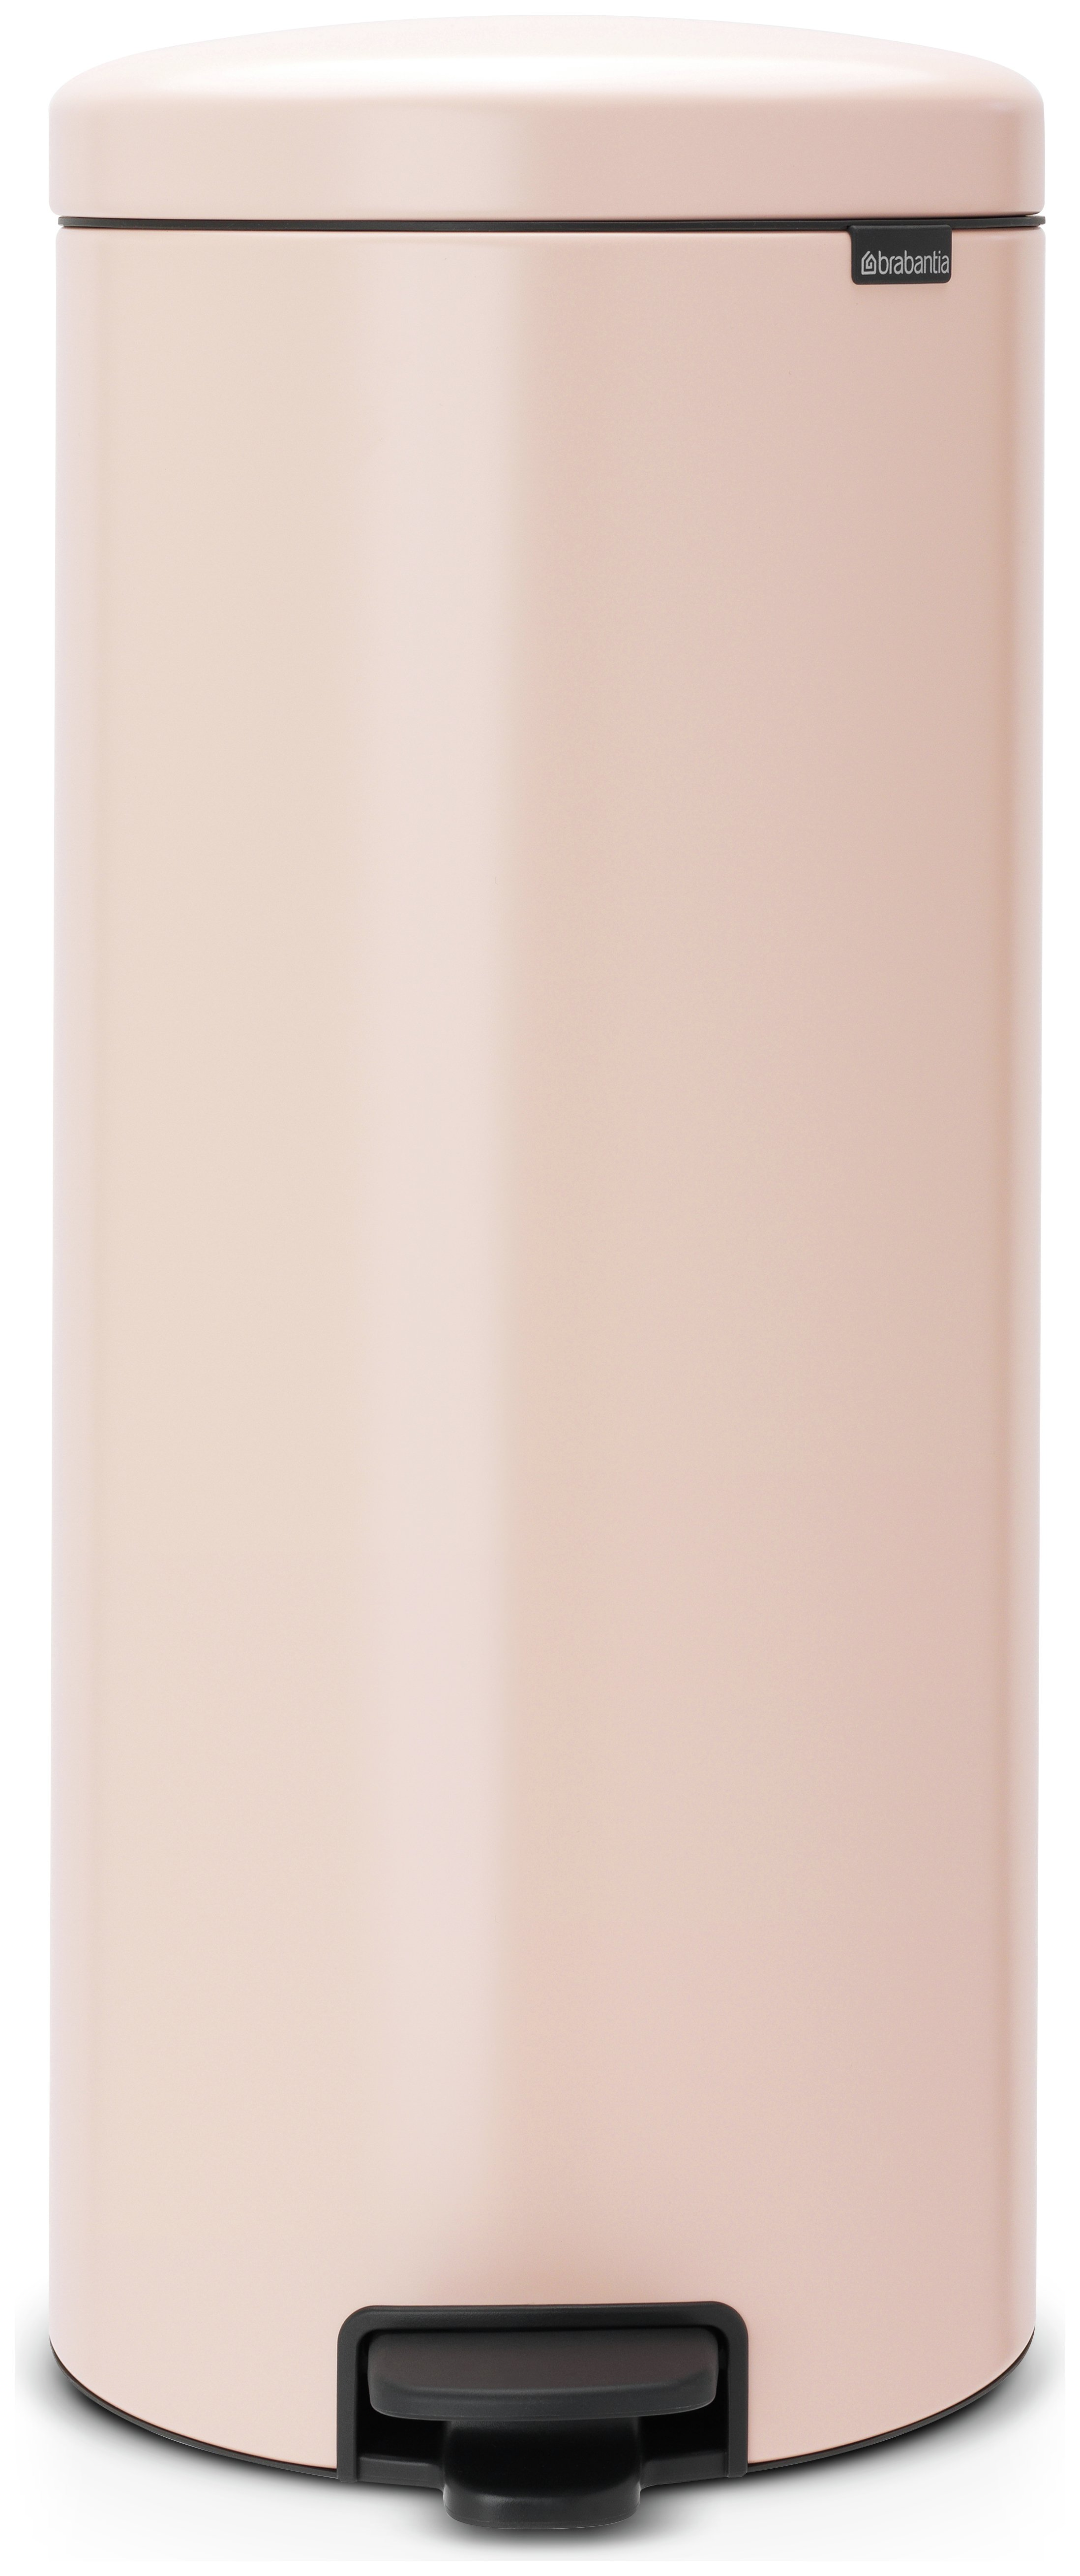 Image of Brabantia newIcon 30 Litre Pedal Bin ??? Pink.